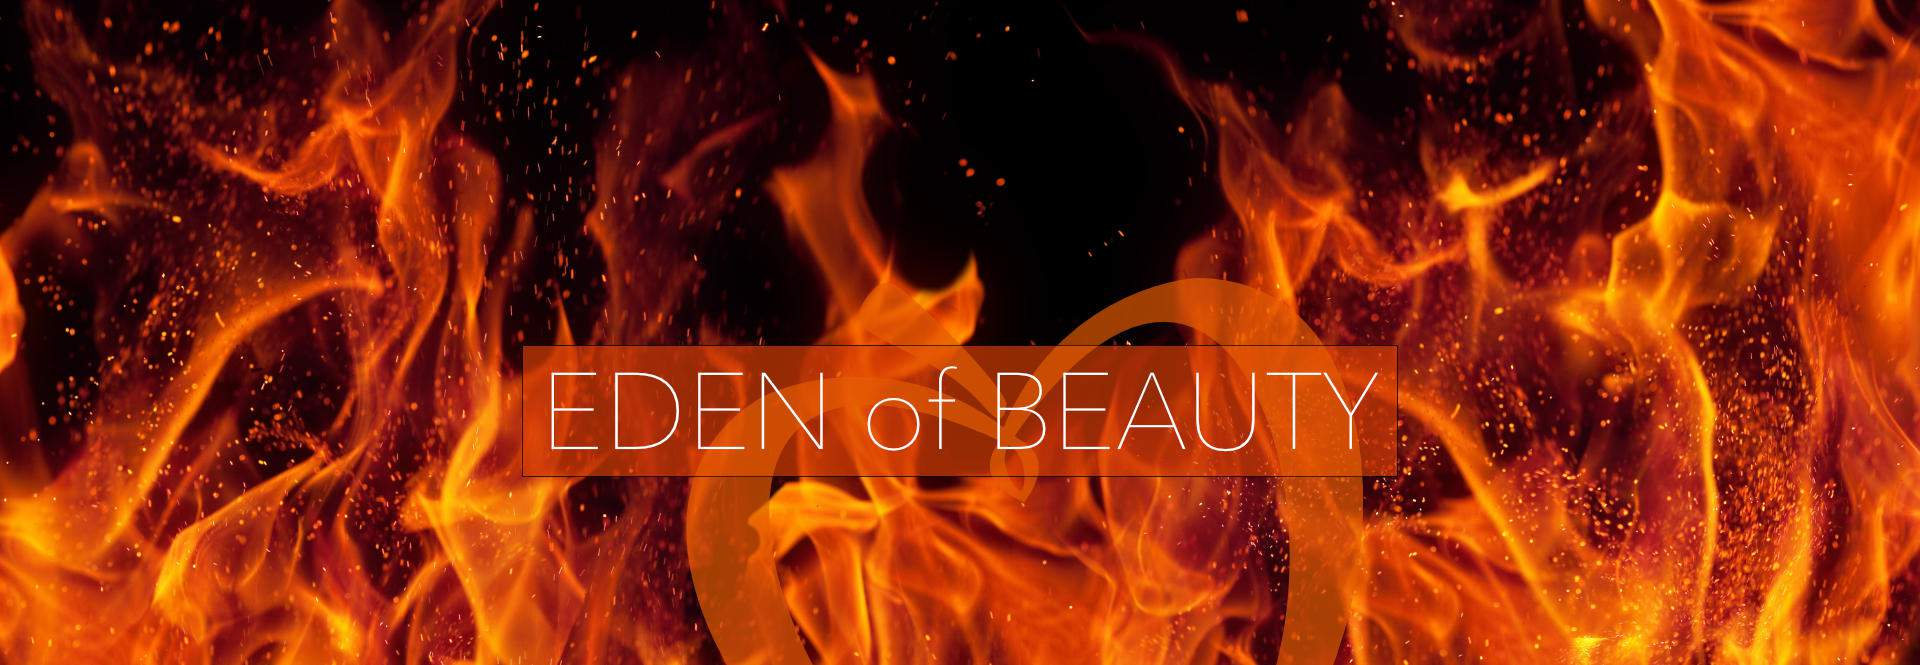 Eden of Beauty